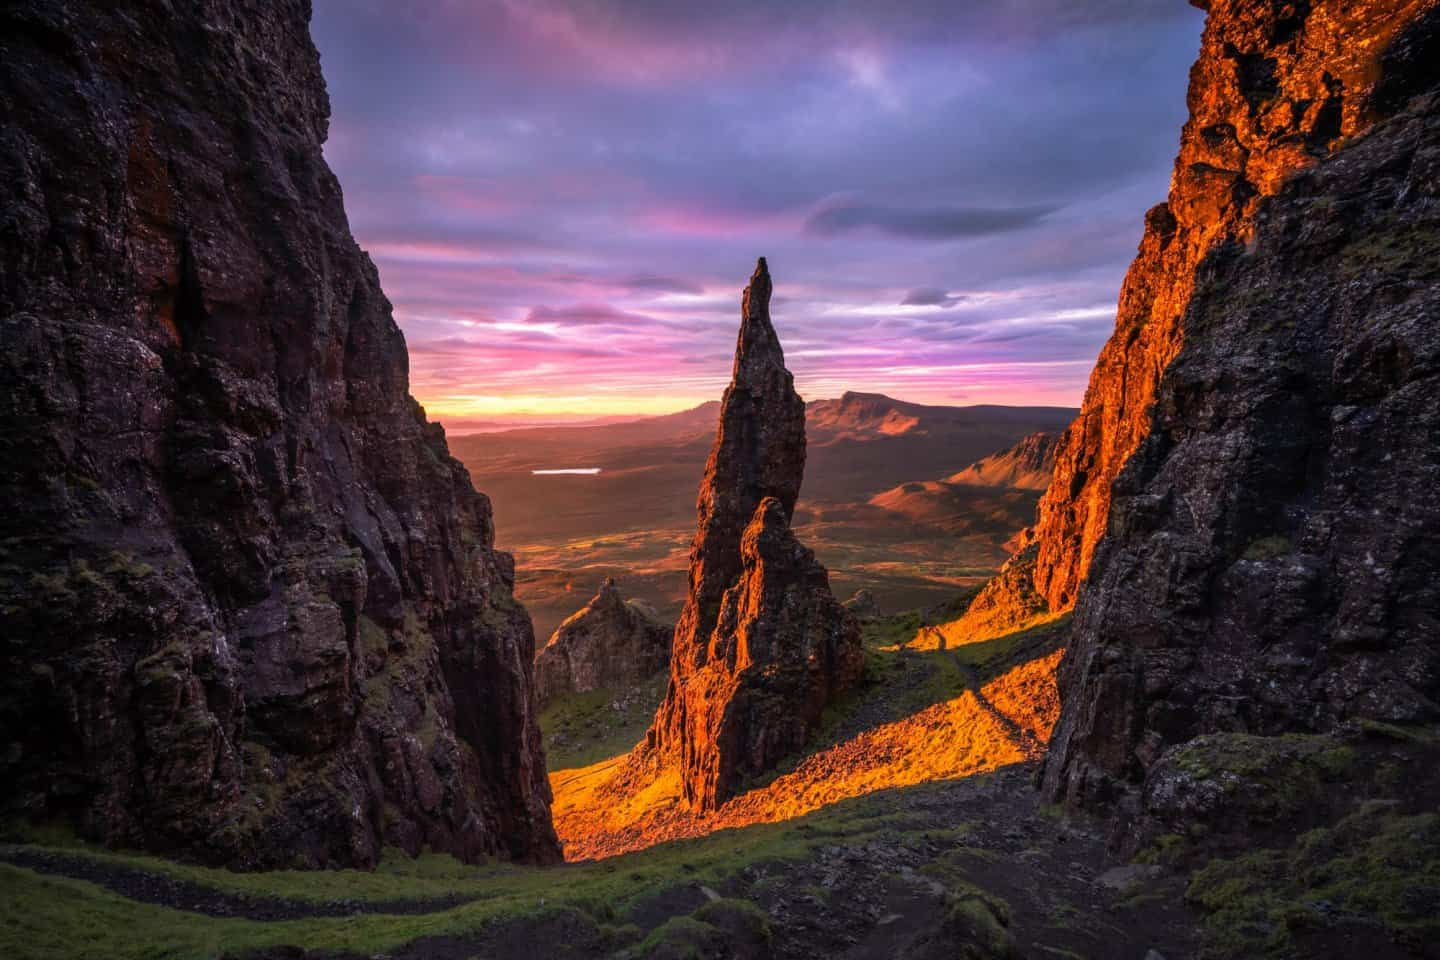 Over 10 days in Scotland, the best sunrise was at The Needle in Quiraing.